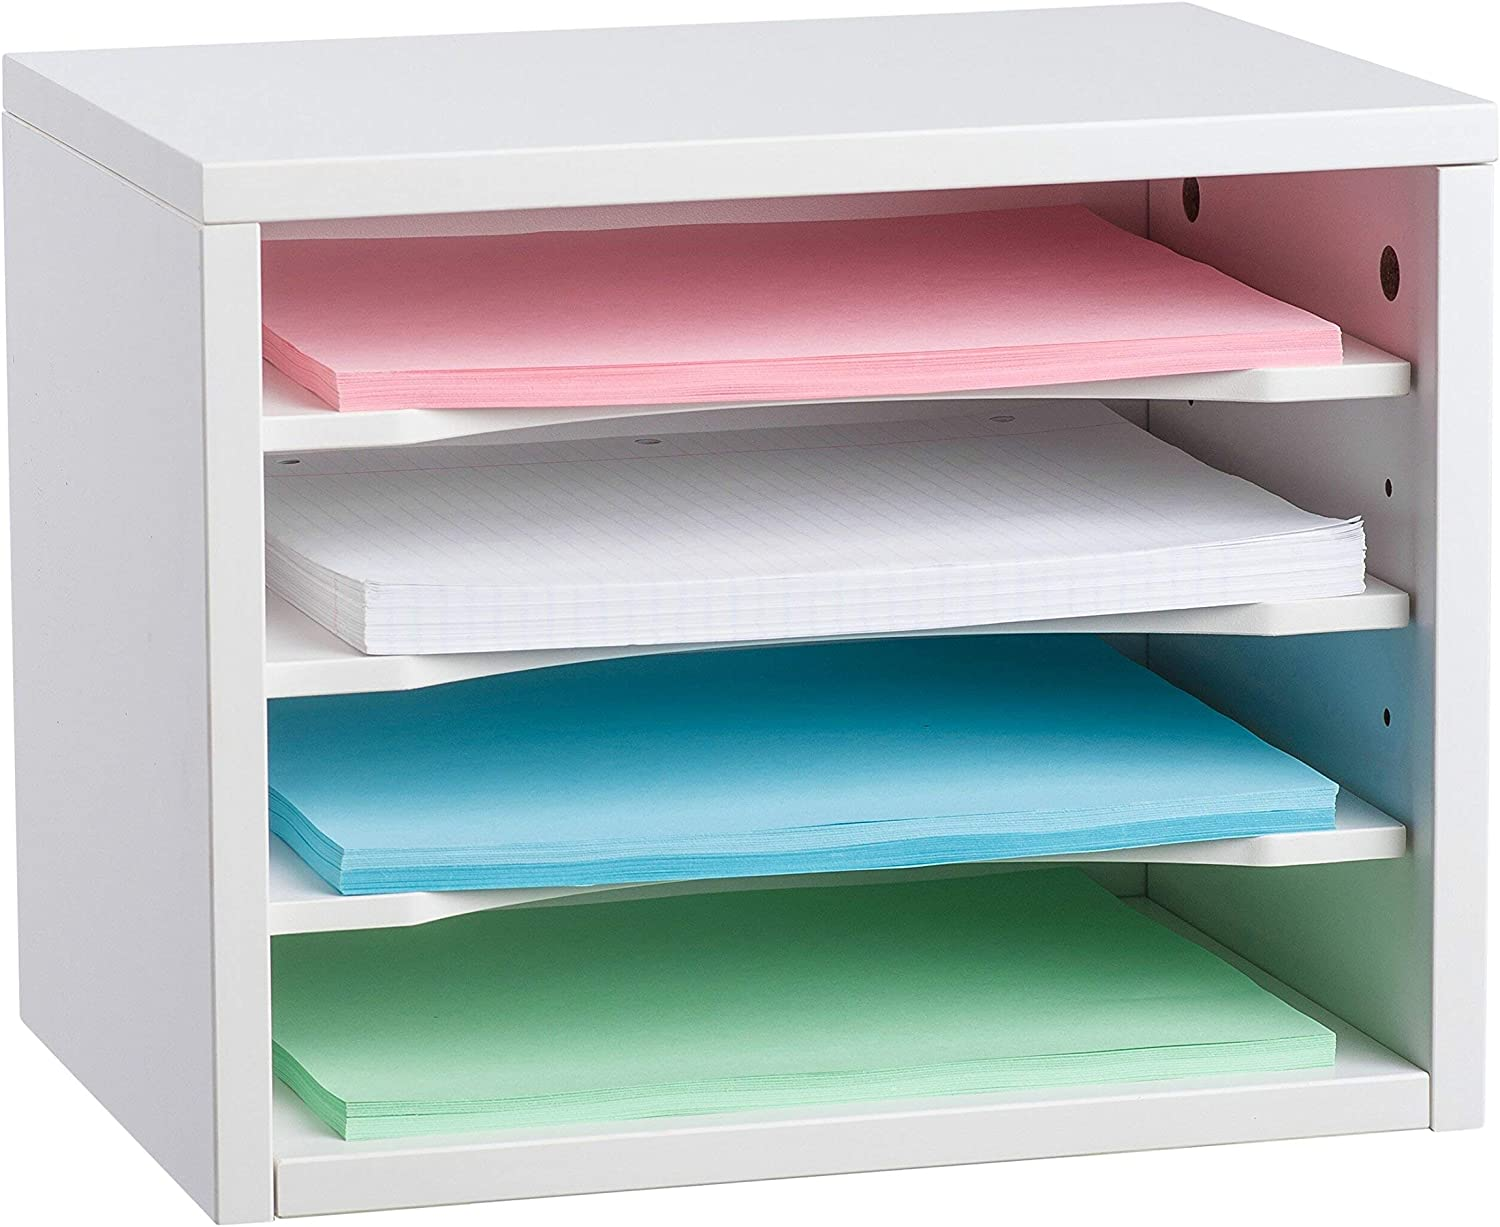 AdirOffice - White Wood Desk Paper Organizer - Construction Paper Holder - 4 Storage Literature File Holder for Office and Home